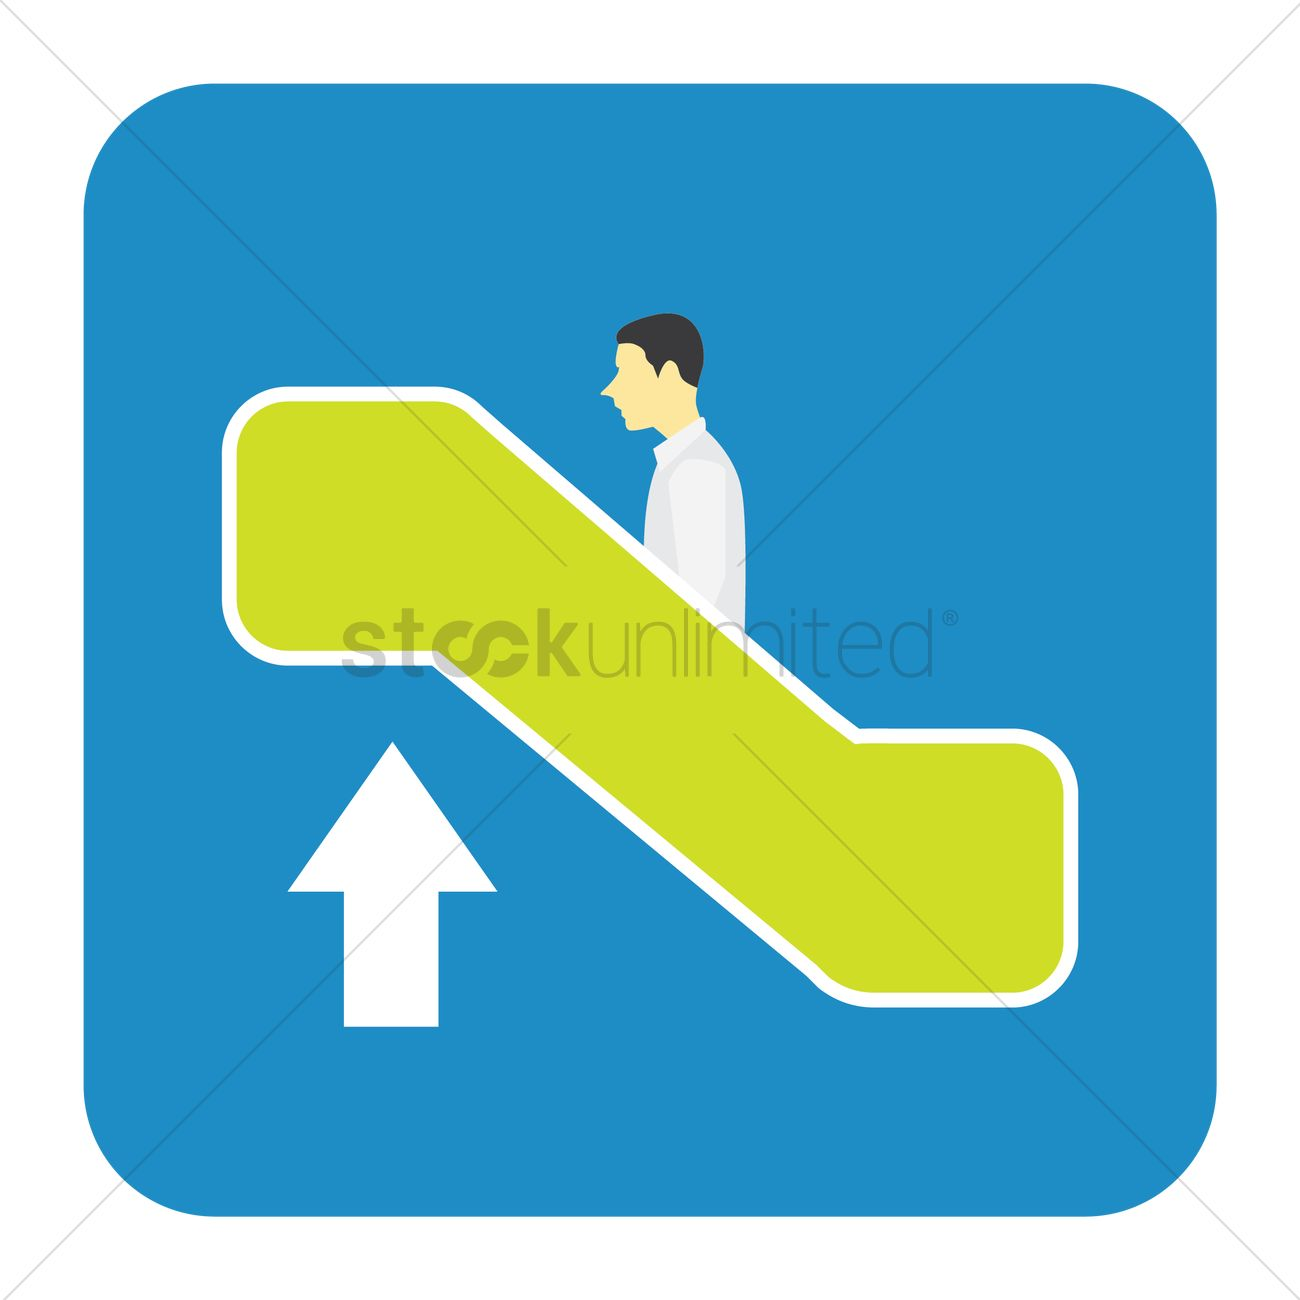 1300x1300 Man Going Up On Escalator Vector Image